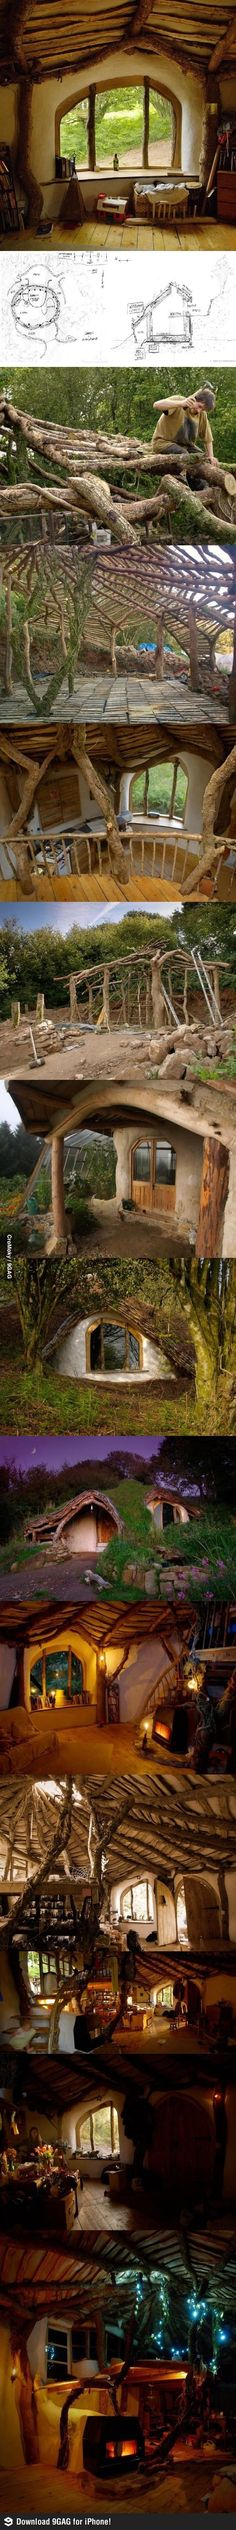 How to build a HOBBIT house.  anybody wanna build one for me?!